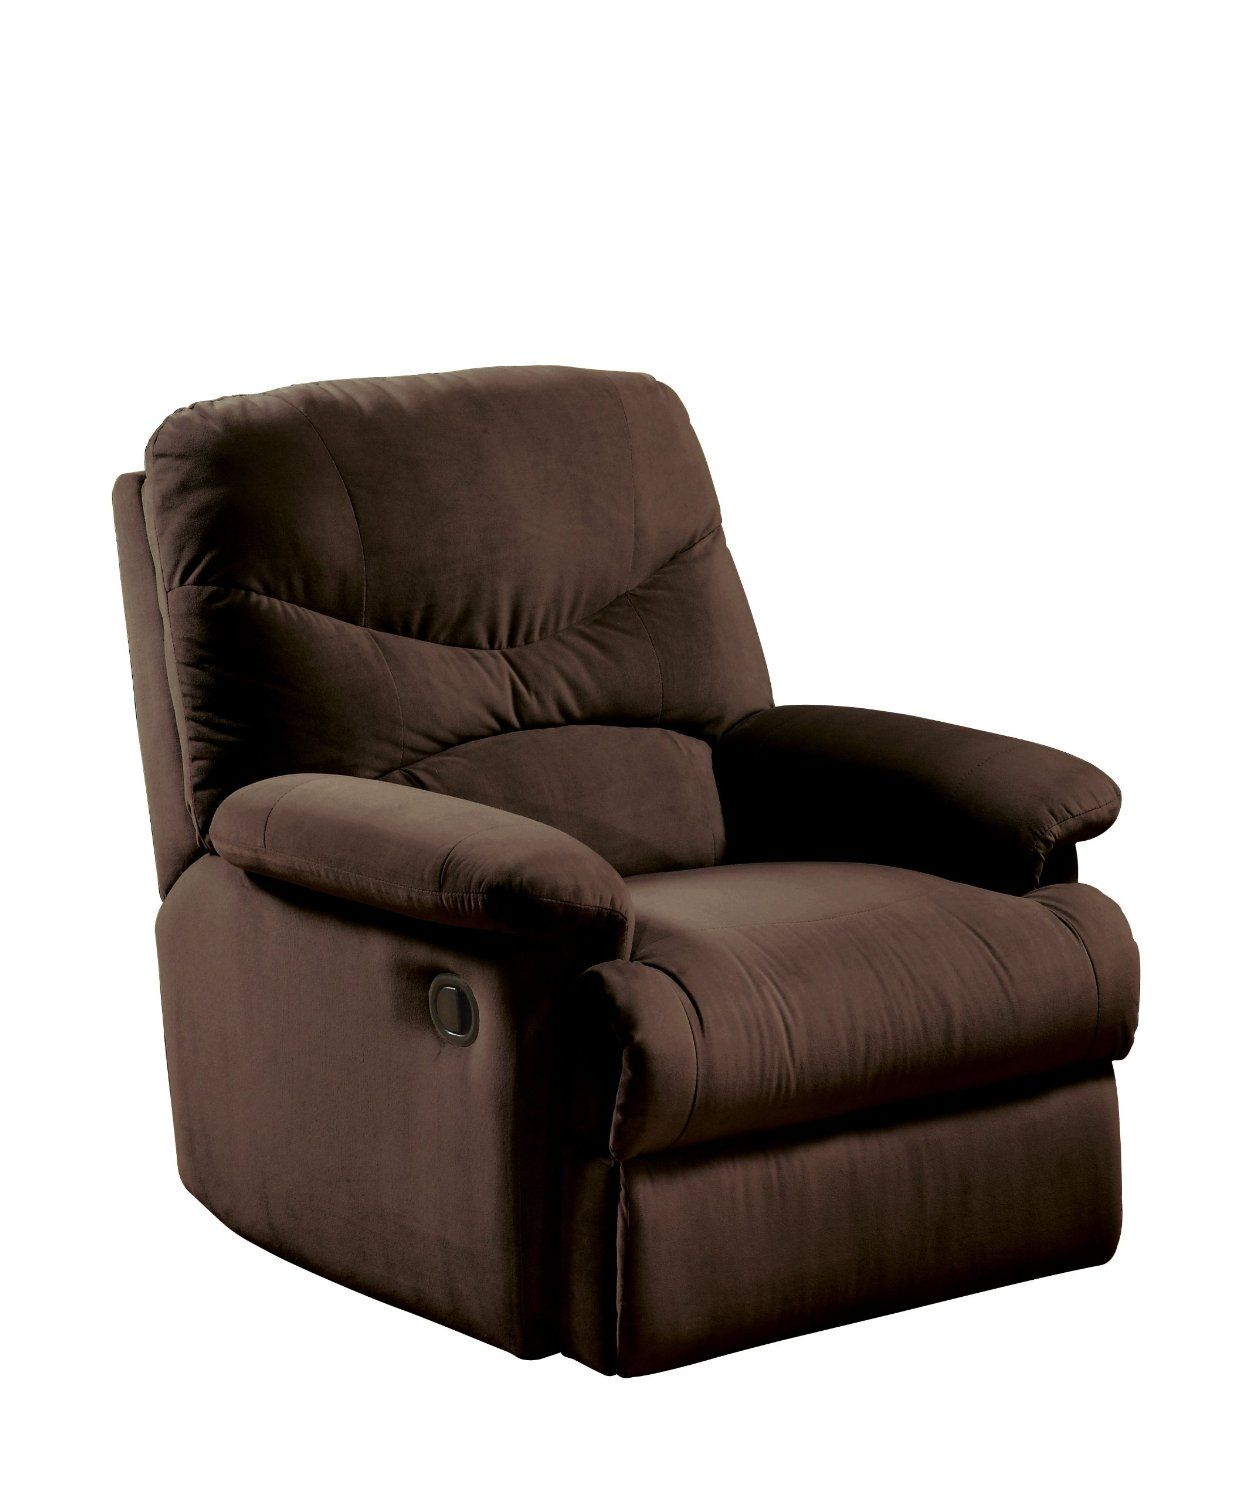 Oakwood Chocolate Microfiber Attractive Comfortable Recliner Chair From Acme Great For Use In Smaller RoomsSturdy Hardwood Frames And Arm Rests